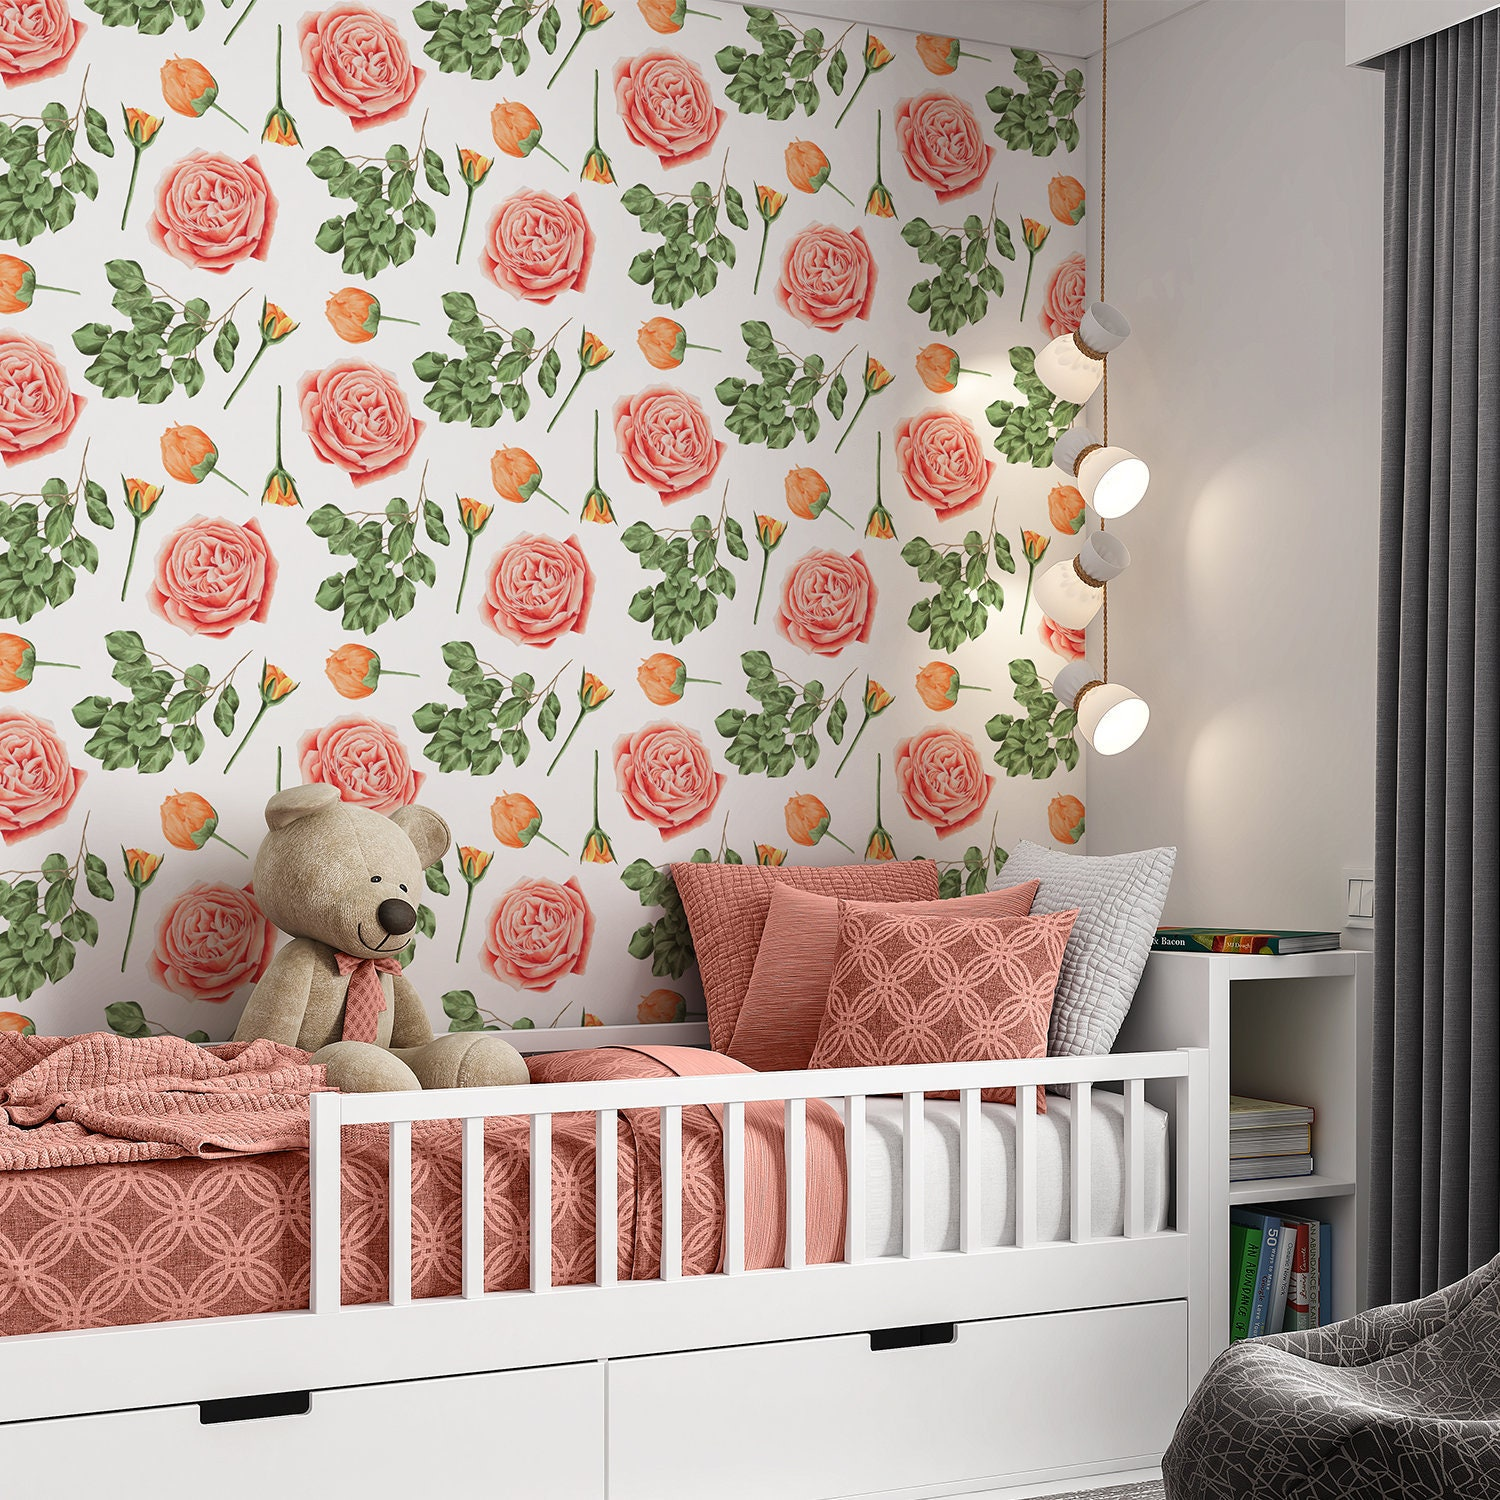 Coral Rose Floral Wallpaper Rose Wallpaper Removable Peel Etsy